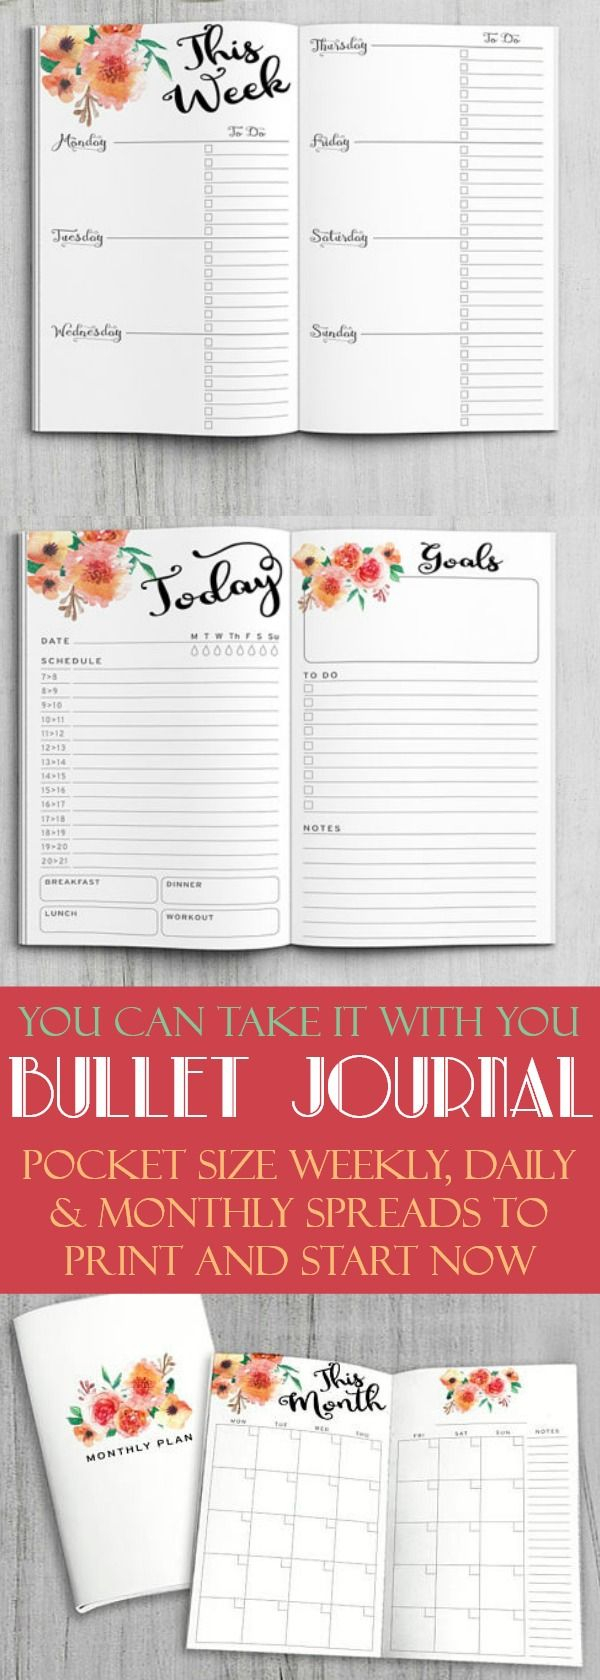 No Excuses! These Pocket Size Bullet Journal Daily, Weekly intended for Pocket Planner Monthly Only: Weekly